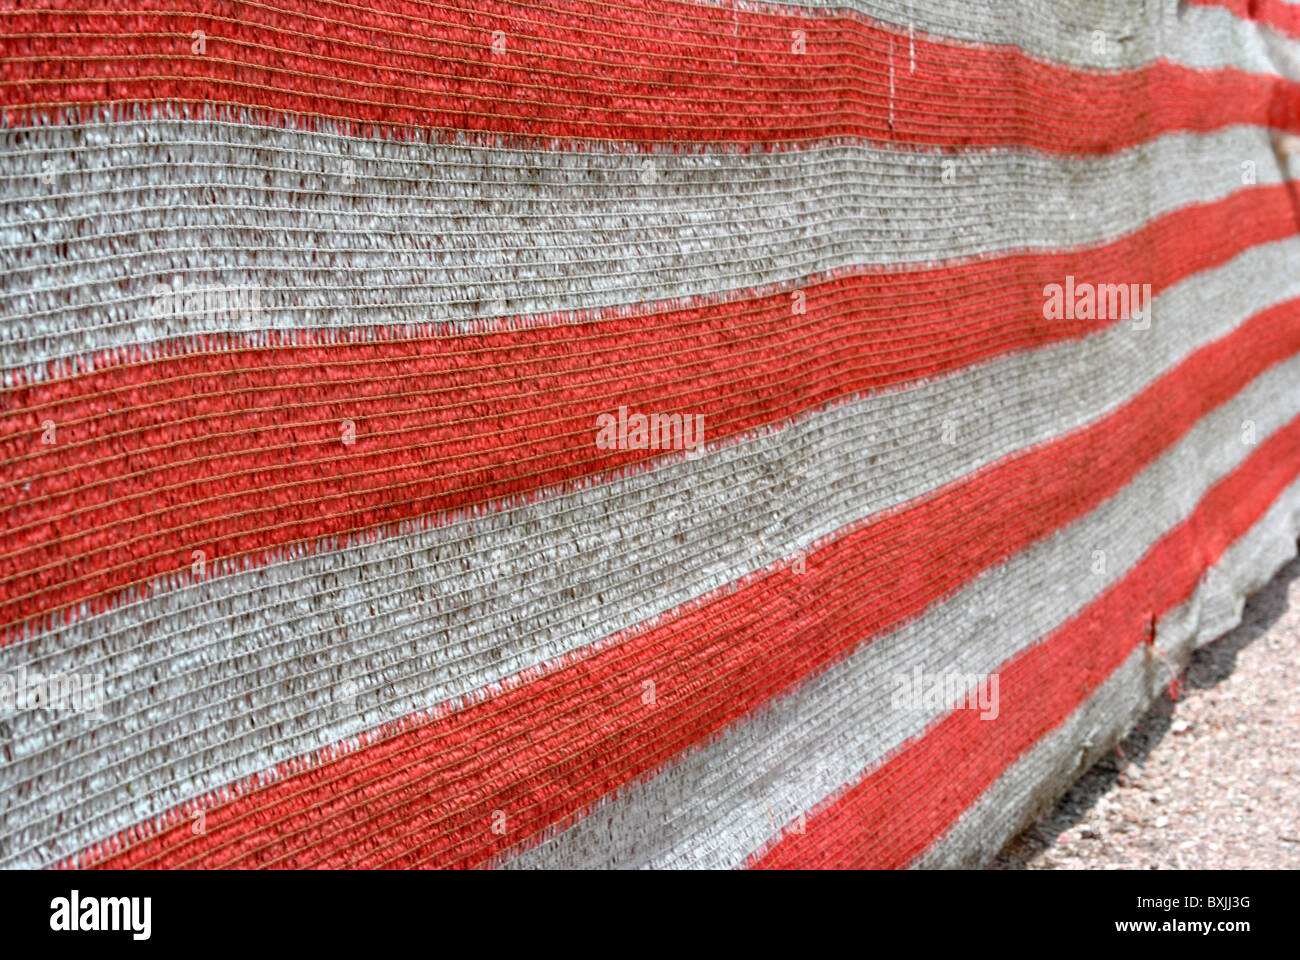 drop cloth red and white nylon used on construction sites Stock Photo